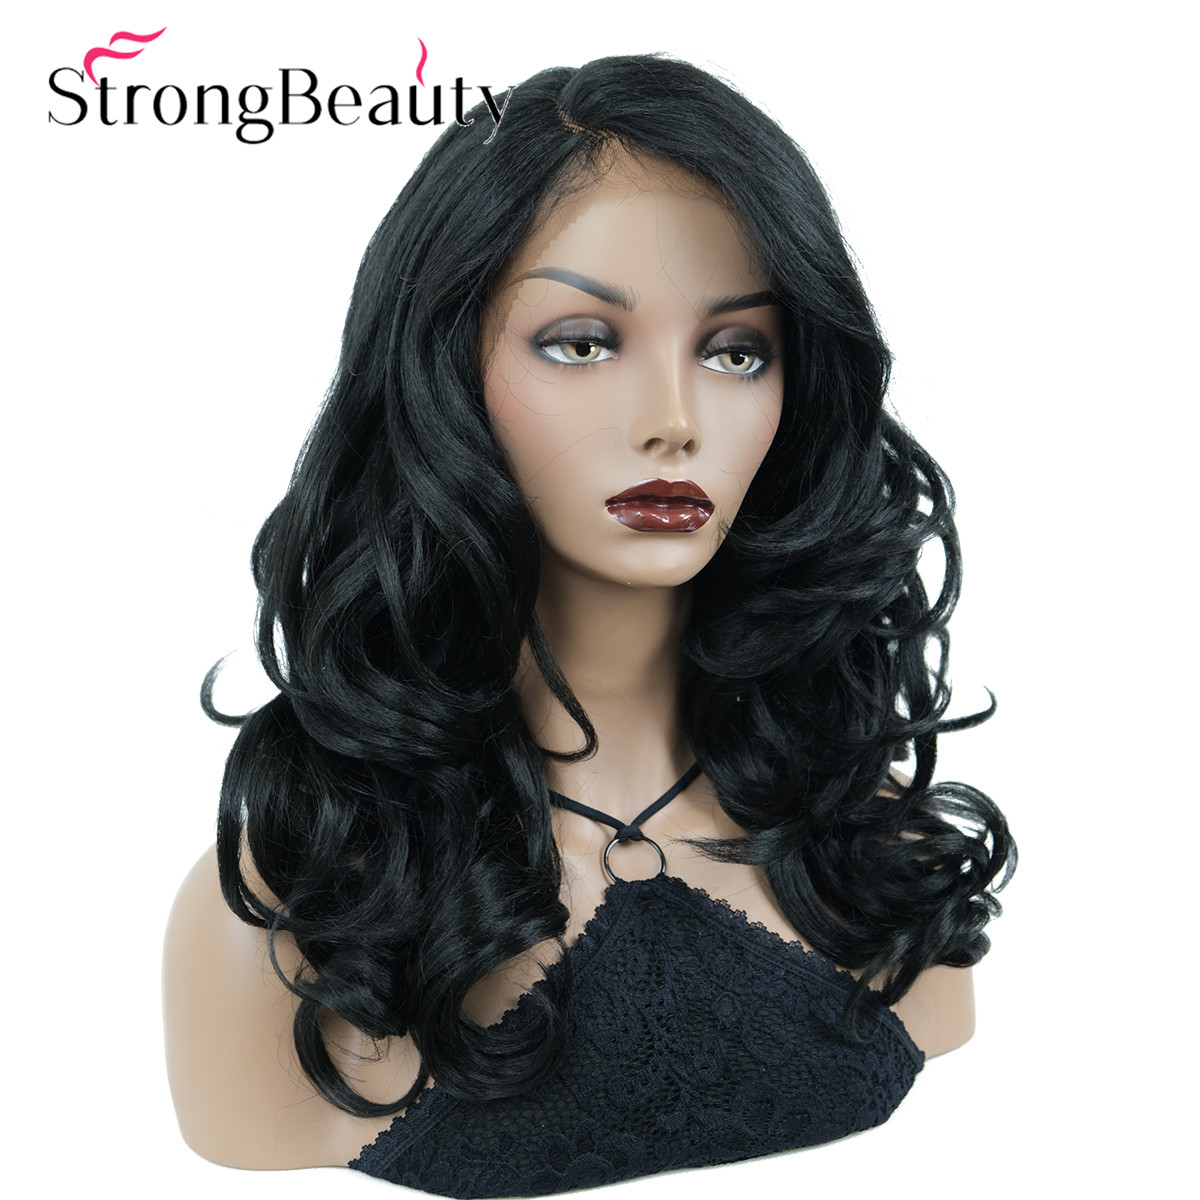 StrongBeauty Women's Synthetic Lace Front Wigs Dark Black Curly Hair Long Lace Wig Natural